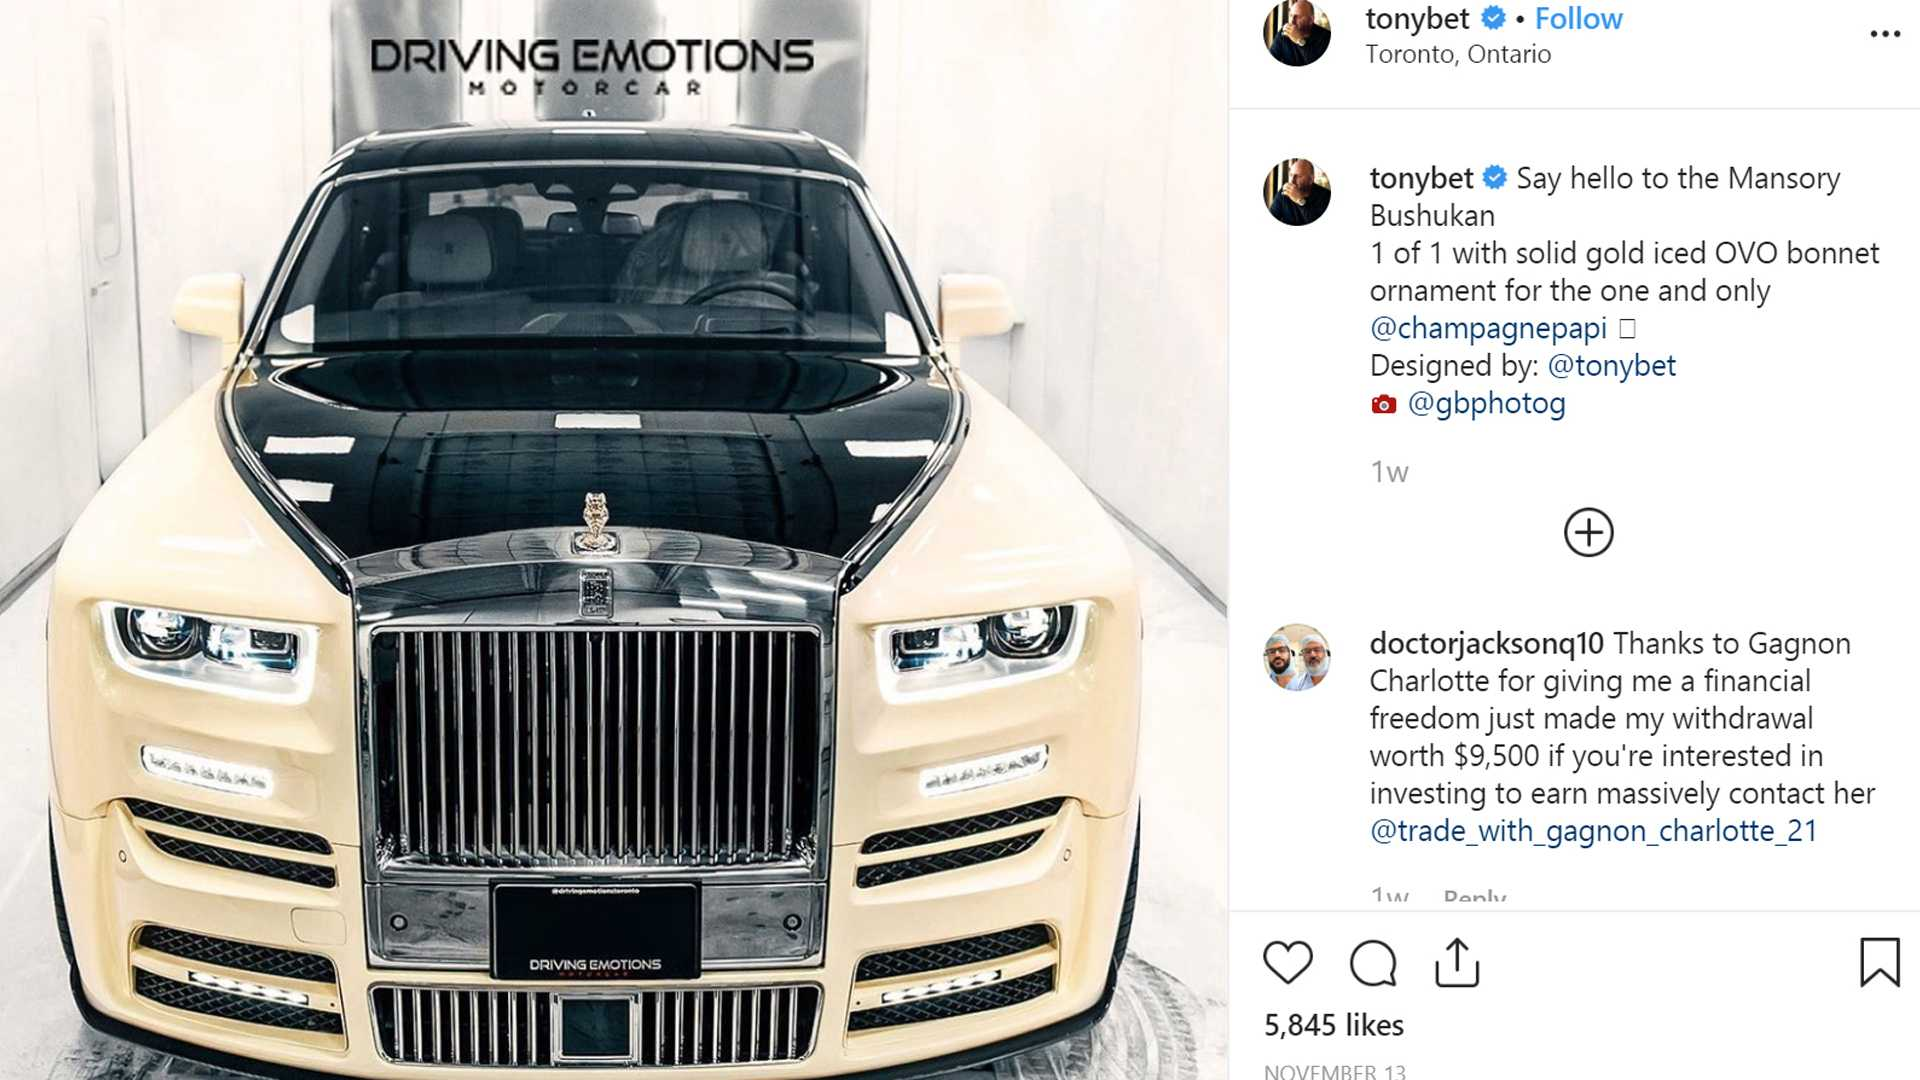 Drake S New Rolls Royce Has A Gold And Diamond Owl Hood Ornament